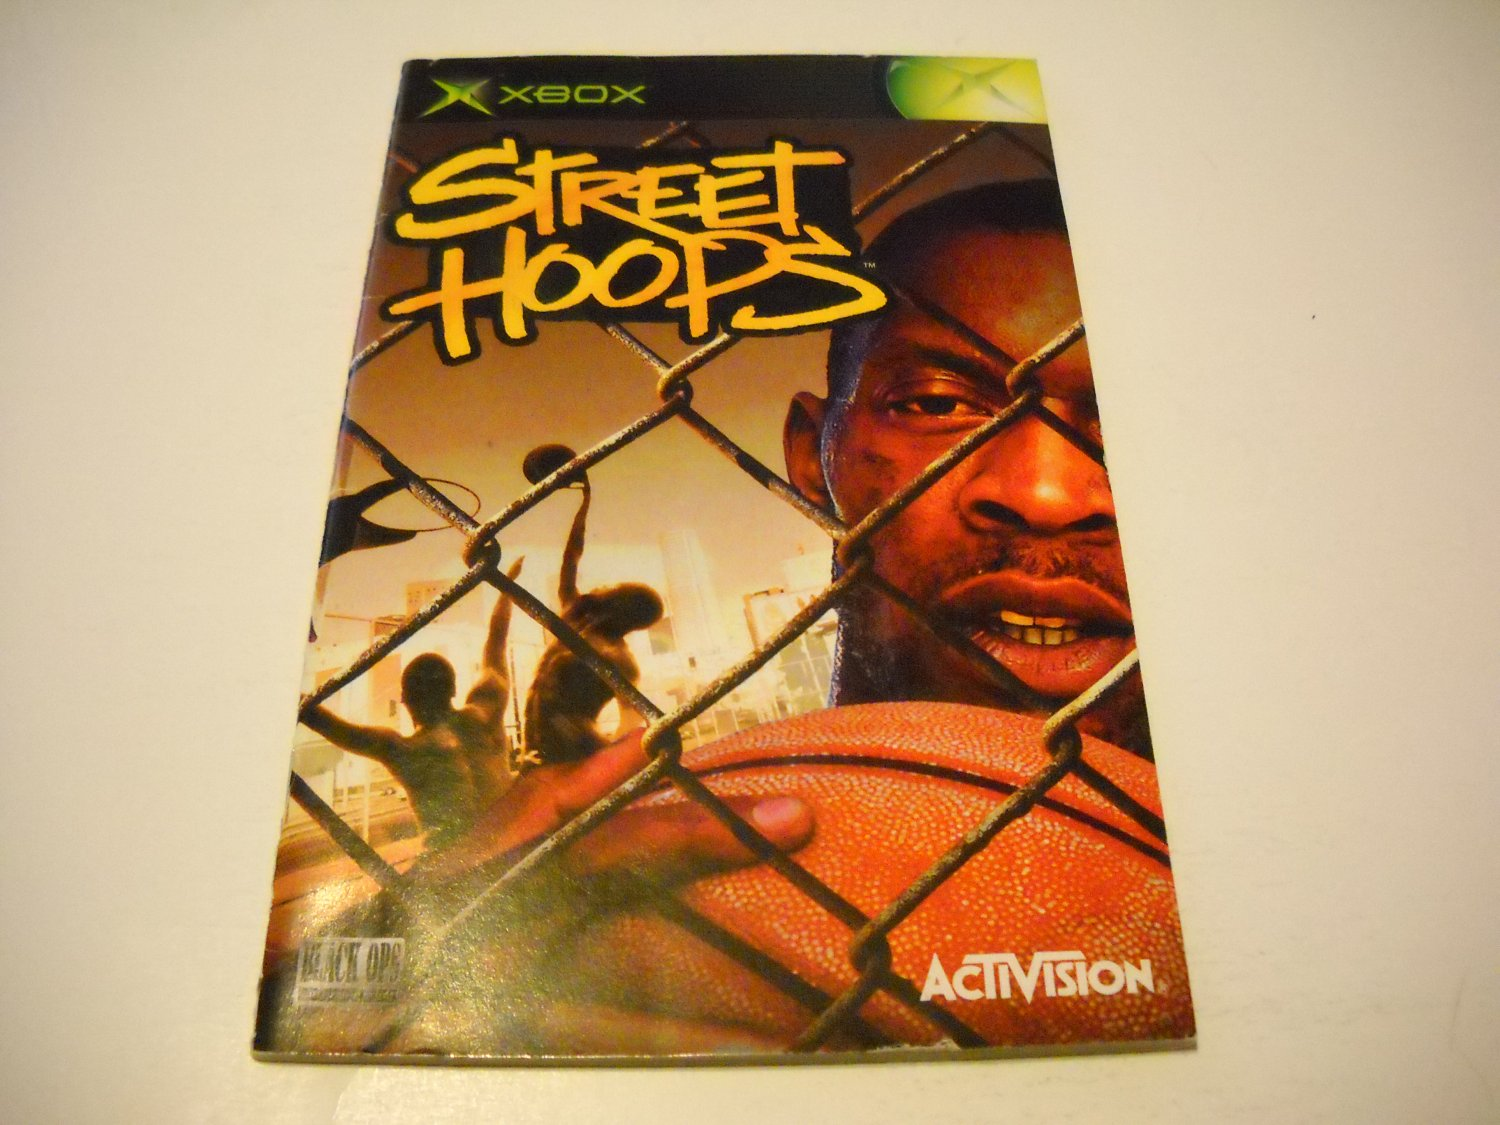 Manual ONLY ~  for Street Hoops   Xbox